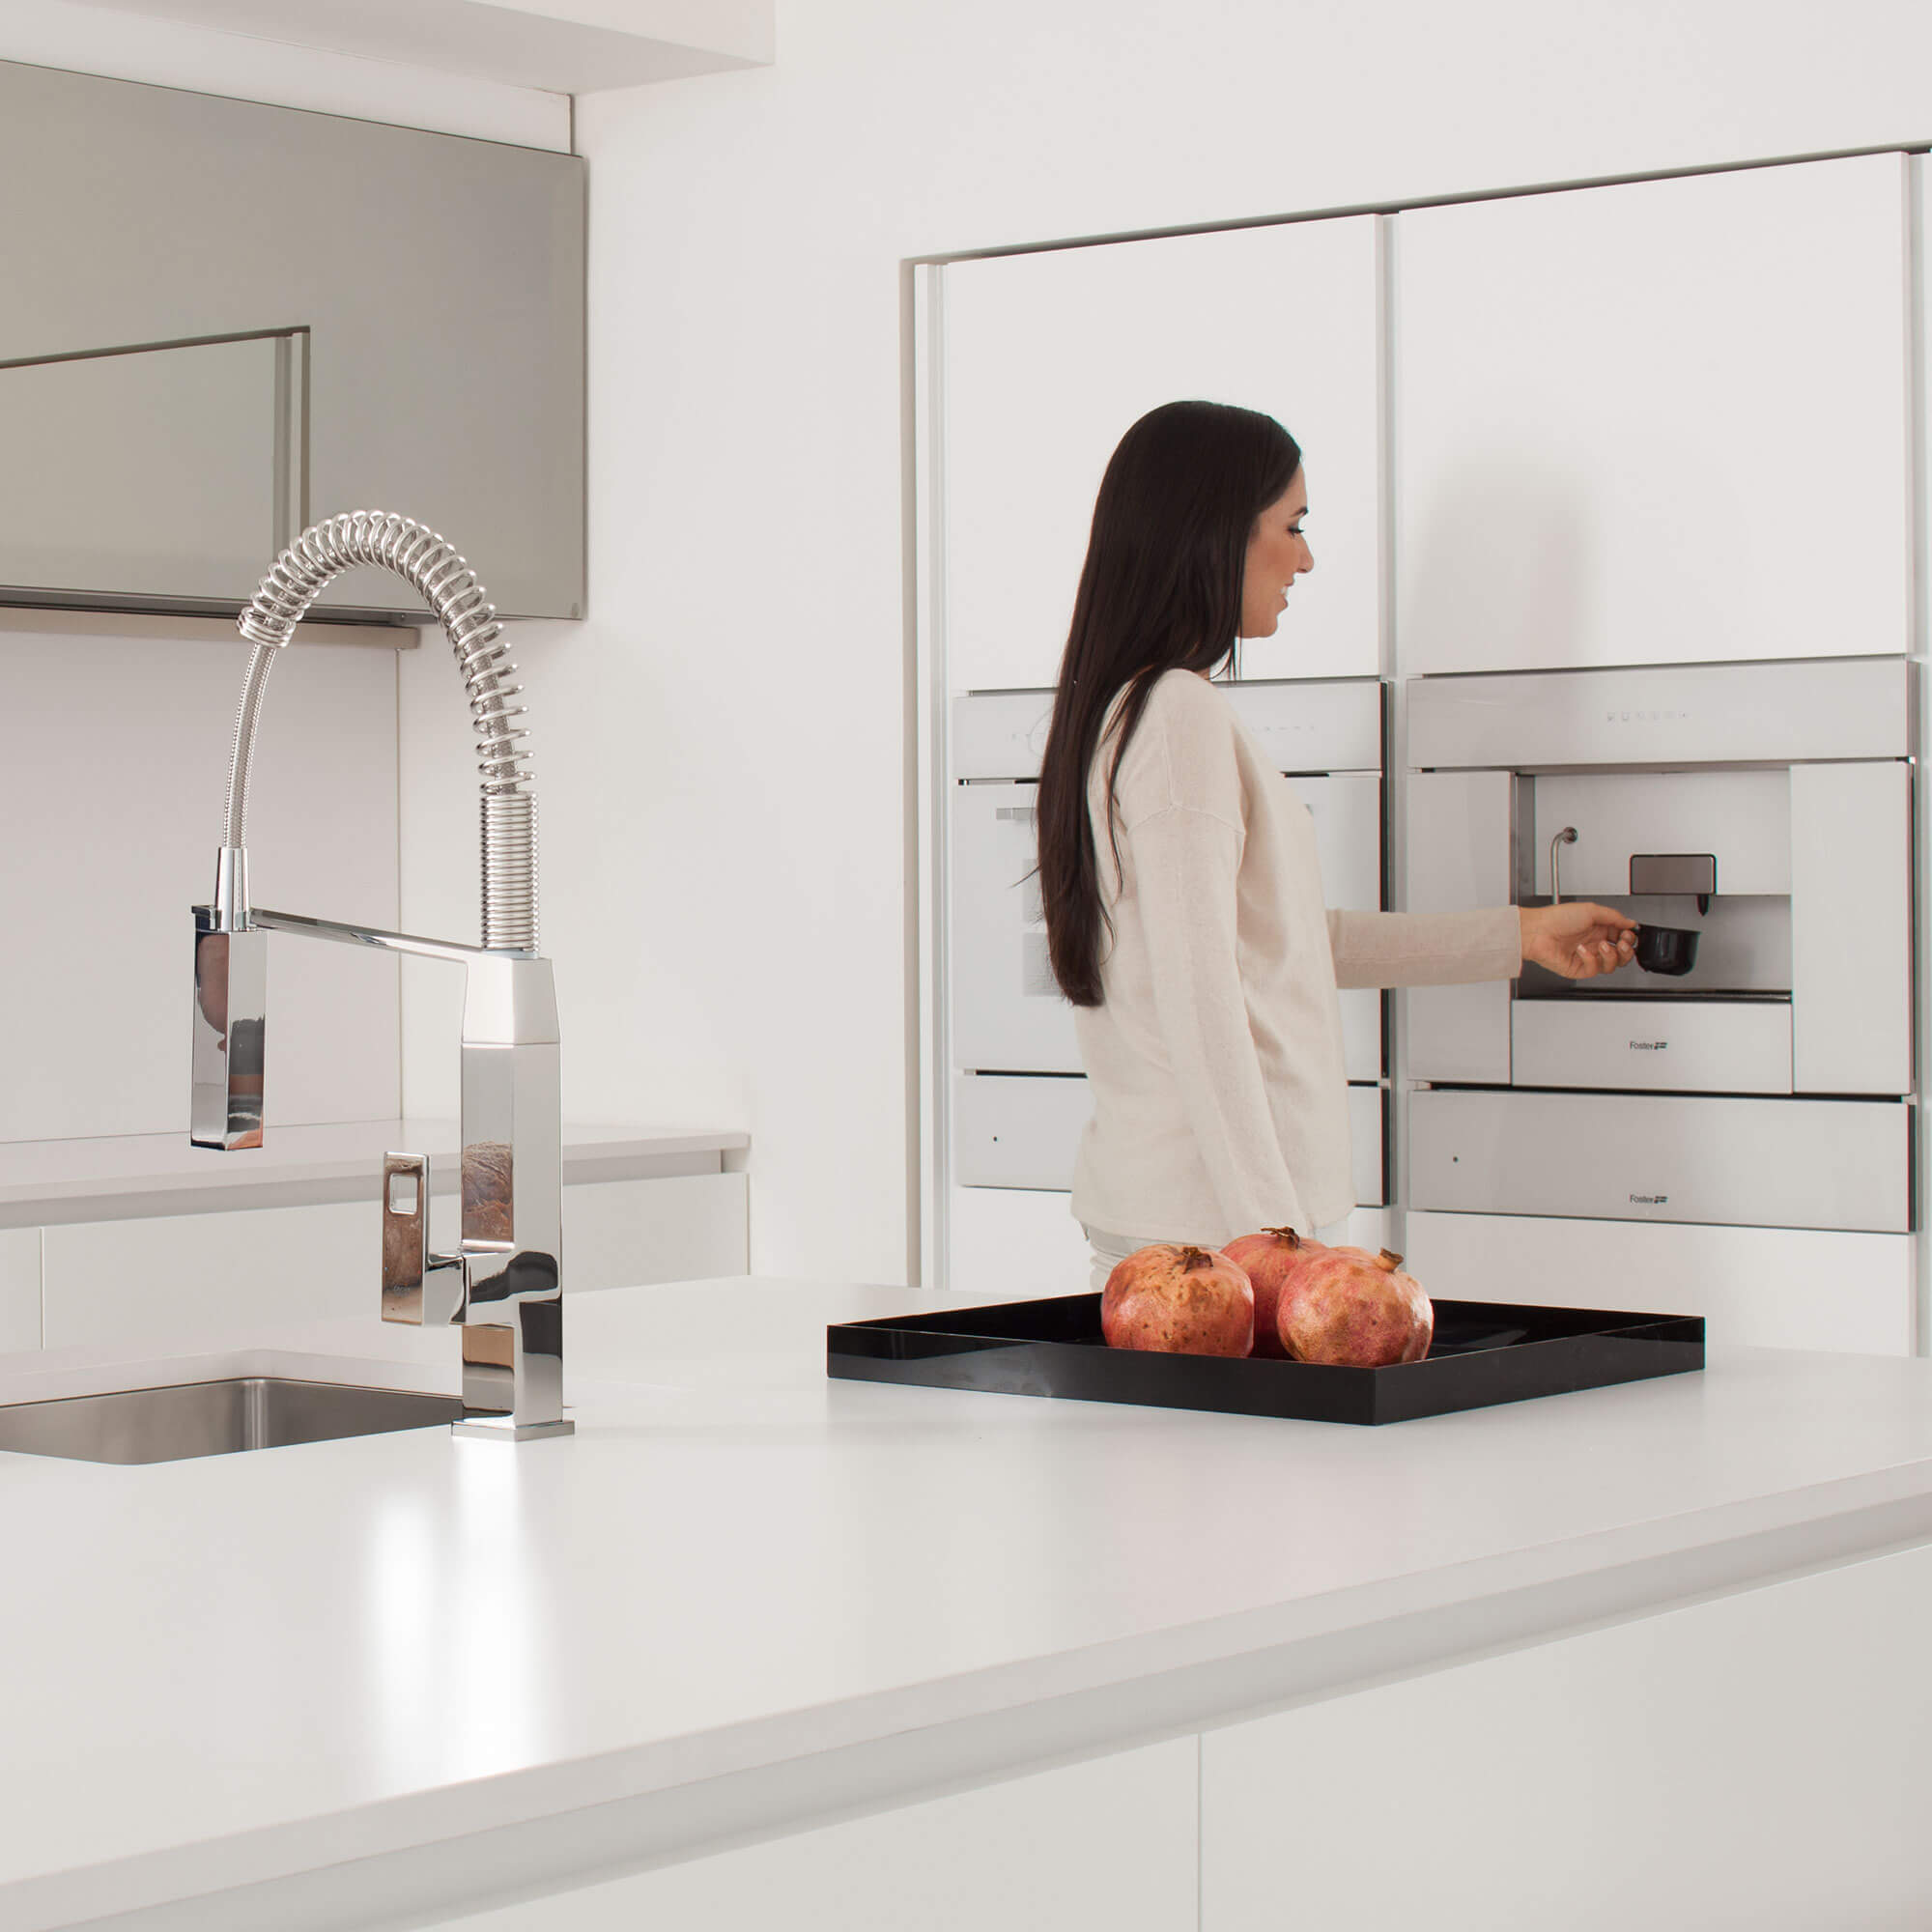 Eurocube kitchen faucet displayed in front of a women.